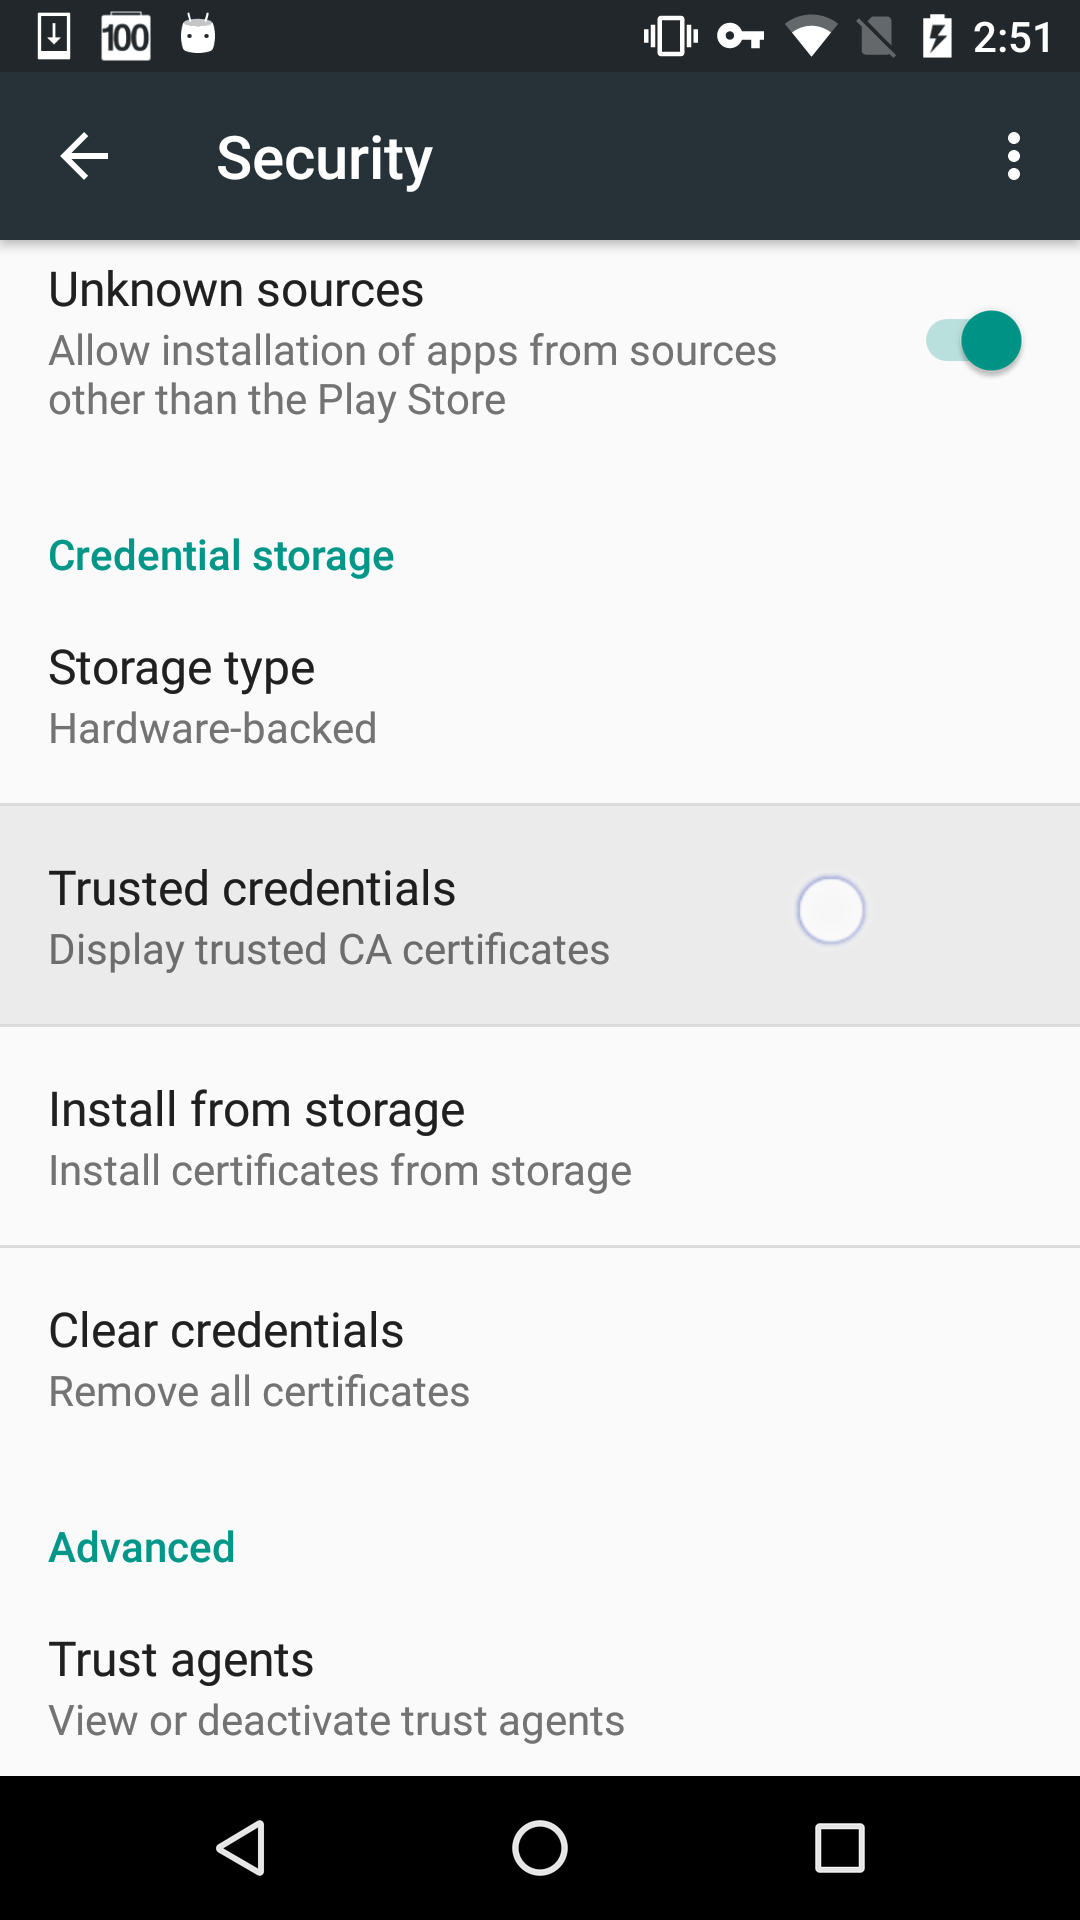 Select the Trusted Credentials Tab.